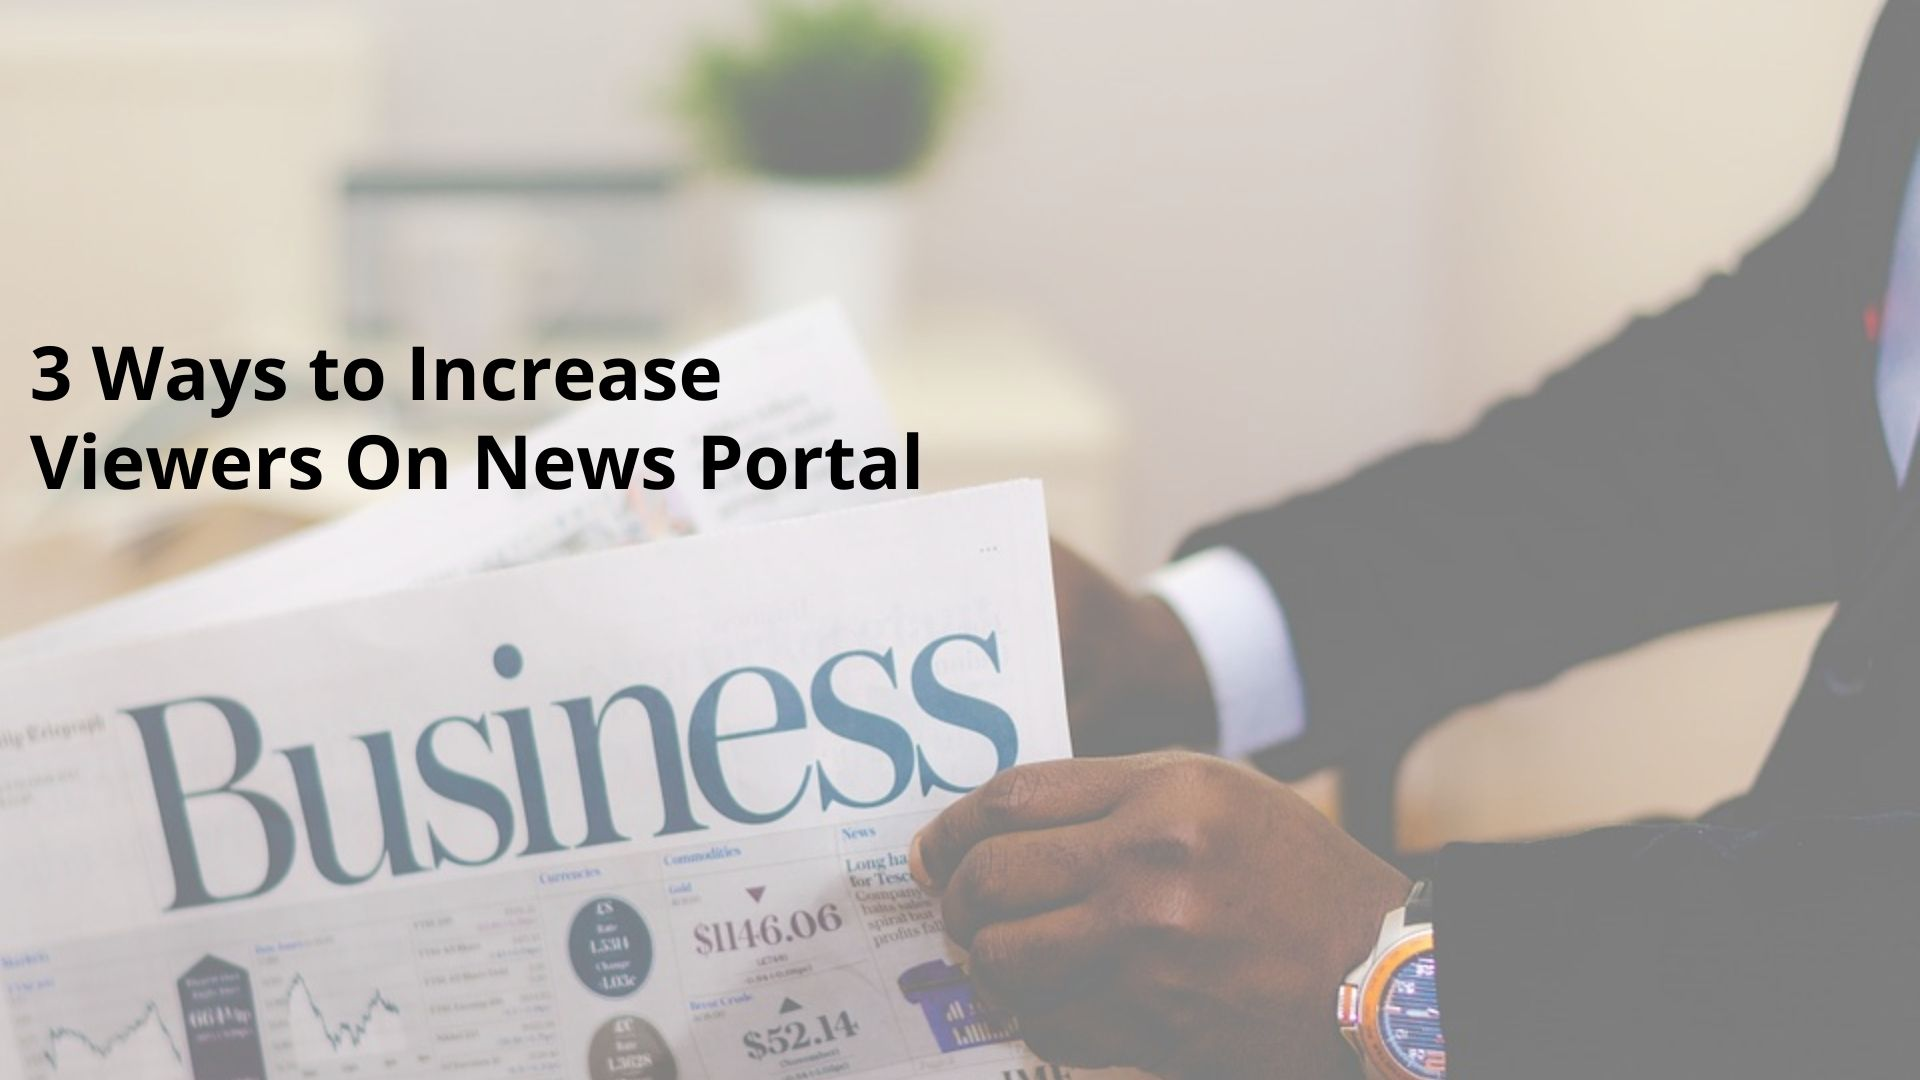 3 Ways to Increase Viewers On News Portal